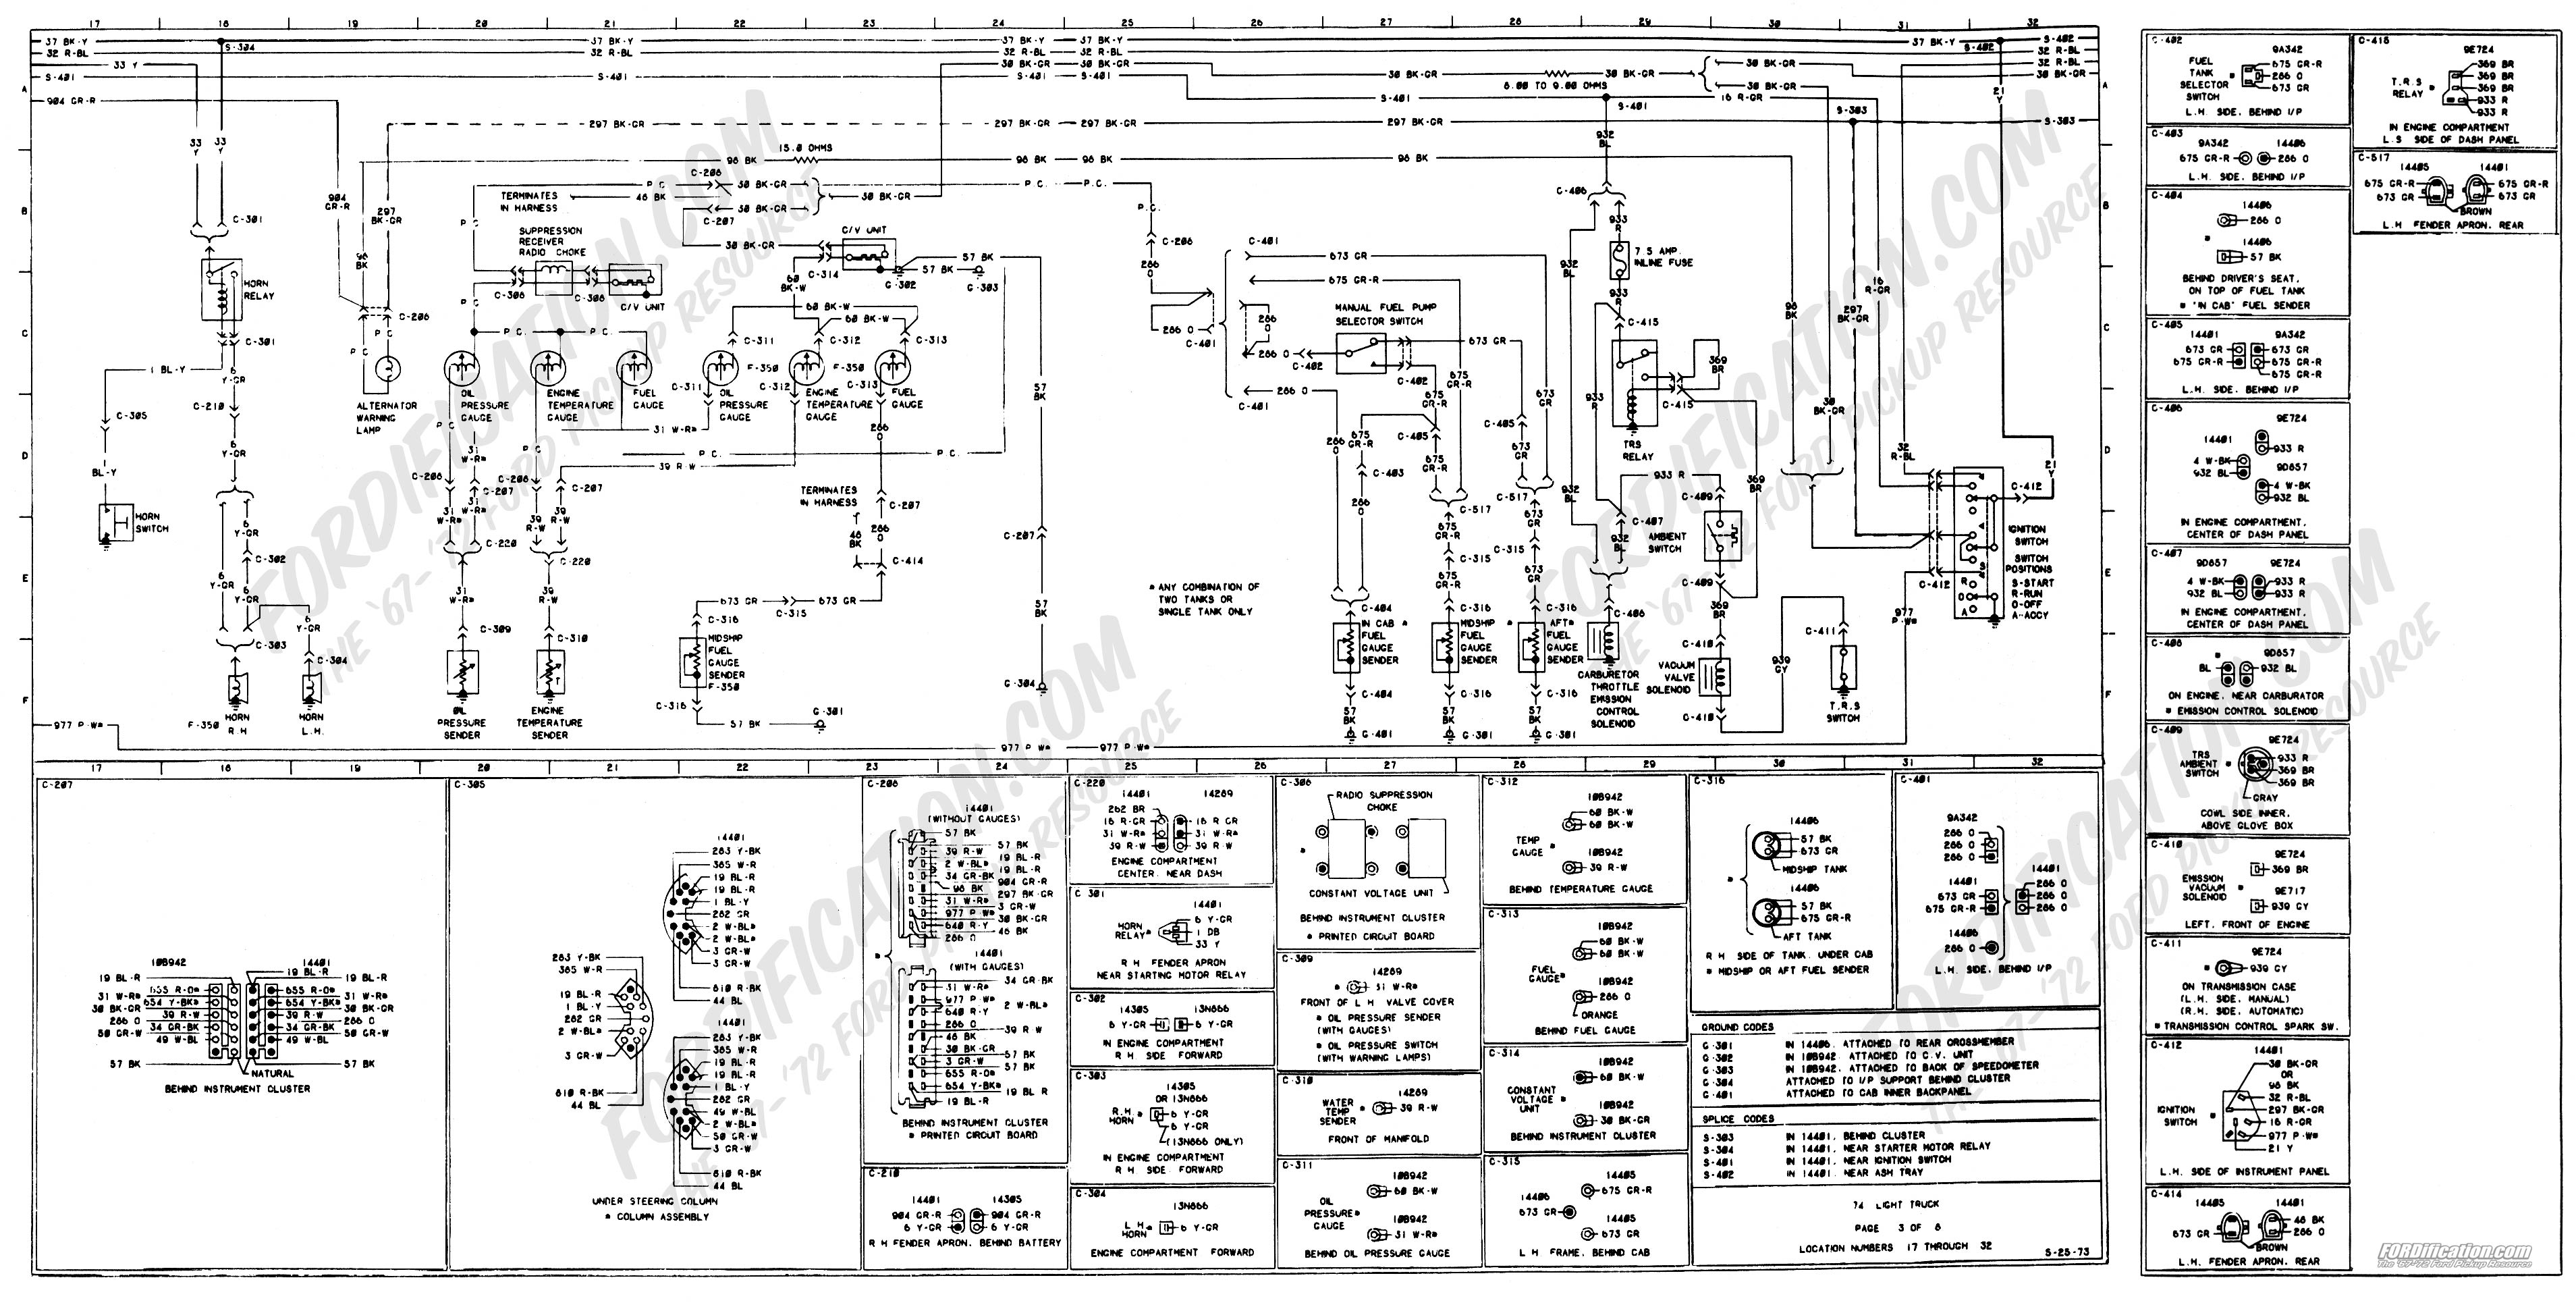 1973 1979 ford truck wiring diagrams schematics fordification net rh fordification net 1971 ford f100 wiring diagram 1972 ford f250 wiring diagram